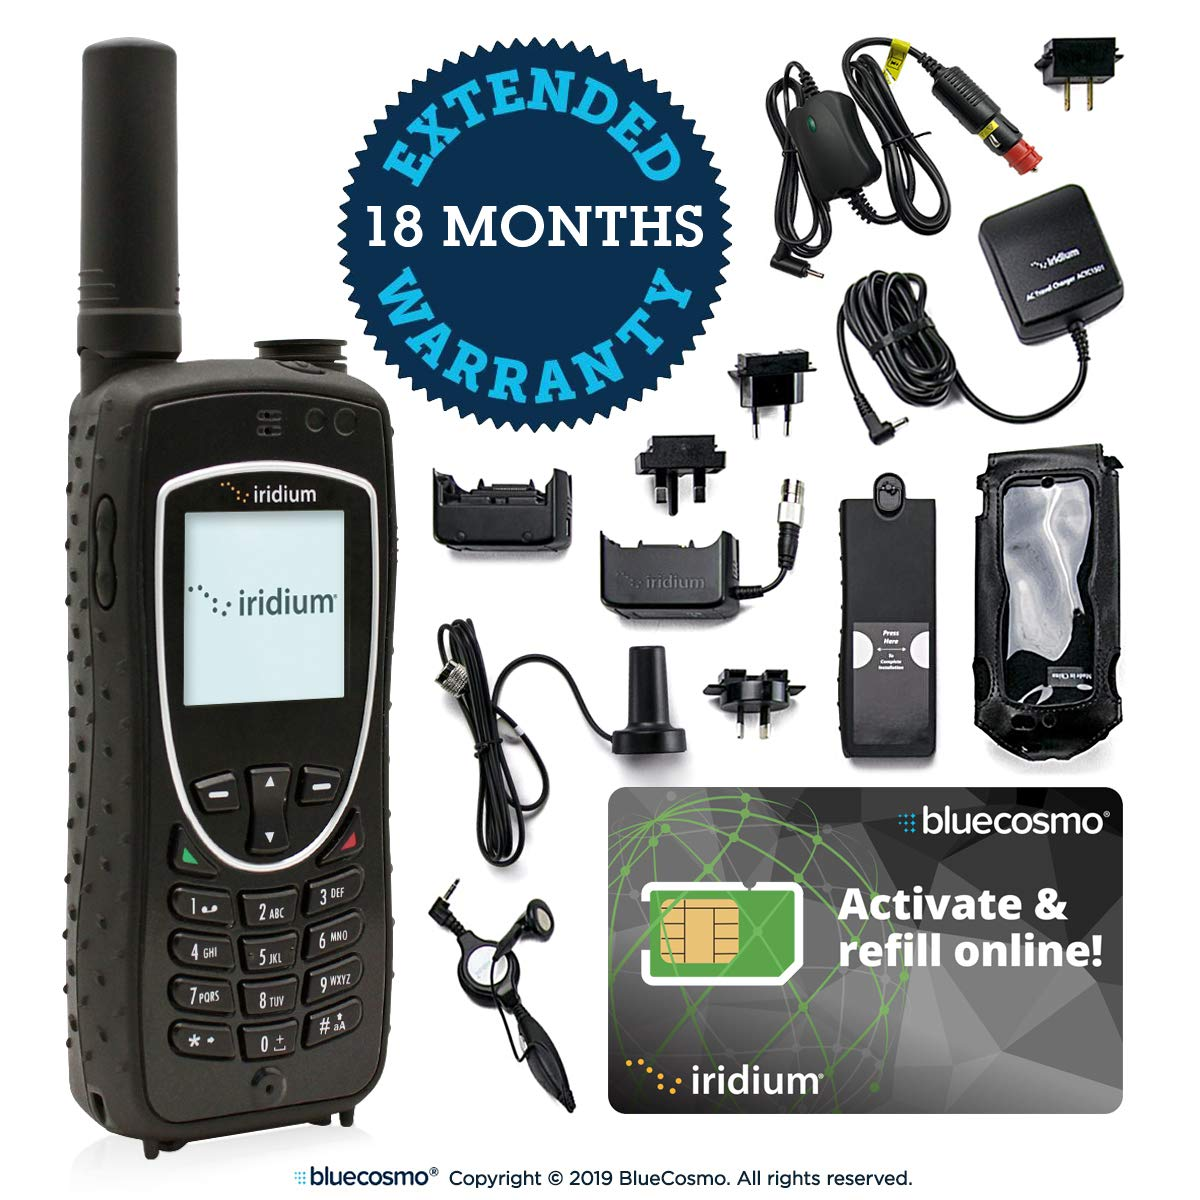 BlueCosmo Iridium Extreme Satellite Phone Bundle - Only Truly Global Satellite Phone - Voice, SMS Text Messaging, GPS Tracking, Emergency SOS - Prepaid SIM Card Included - Online Activation - 24/7 by BlueCosmo